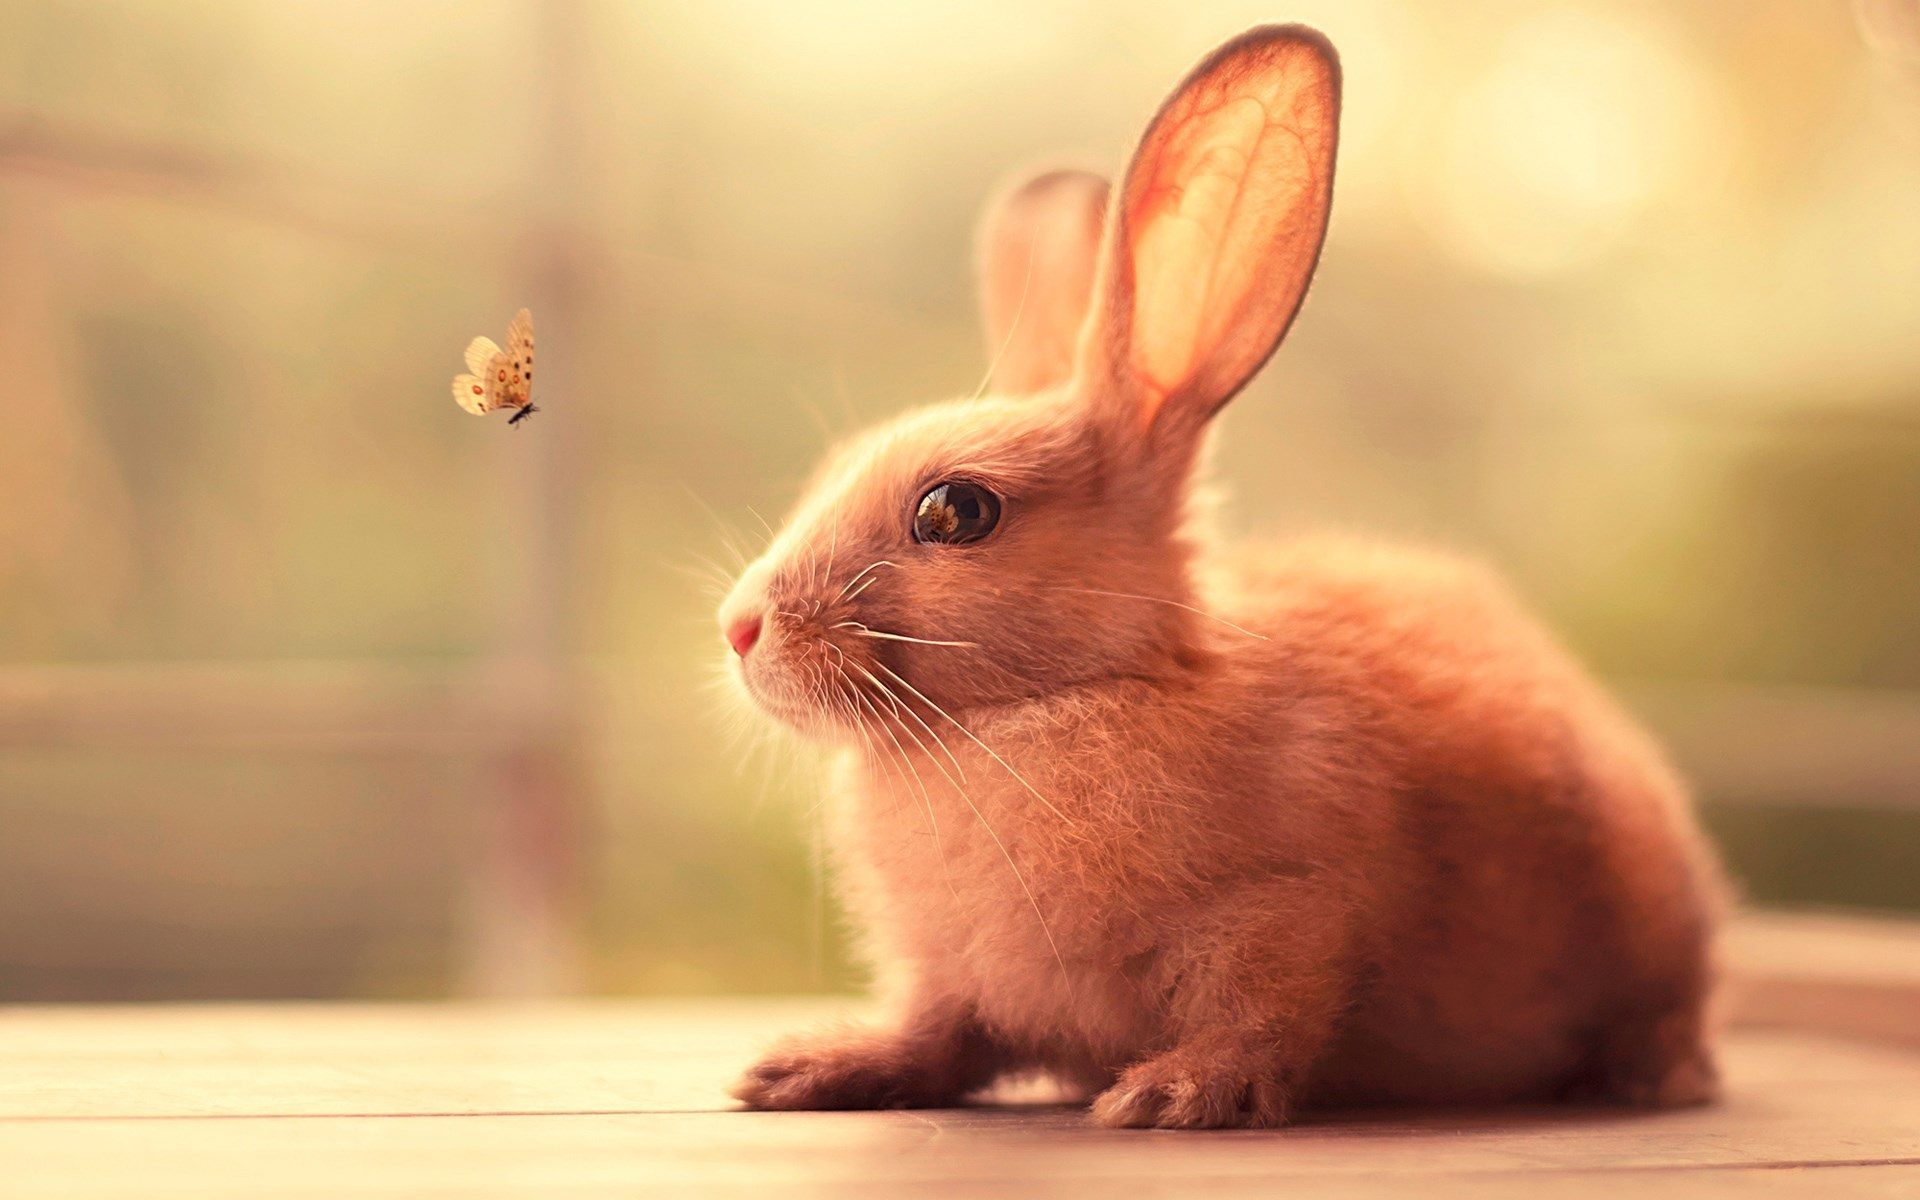 1920x1200 Bunny Wallpaper For Desktop Background Free Download Animals Cutest Bunny Ever Cute Bunny